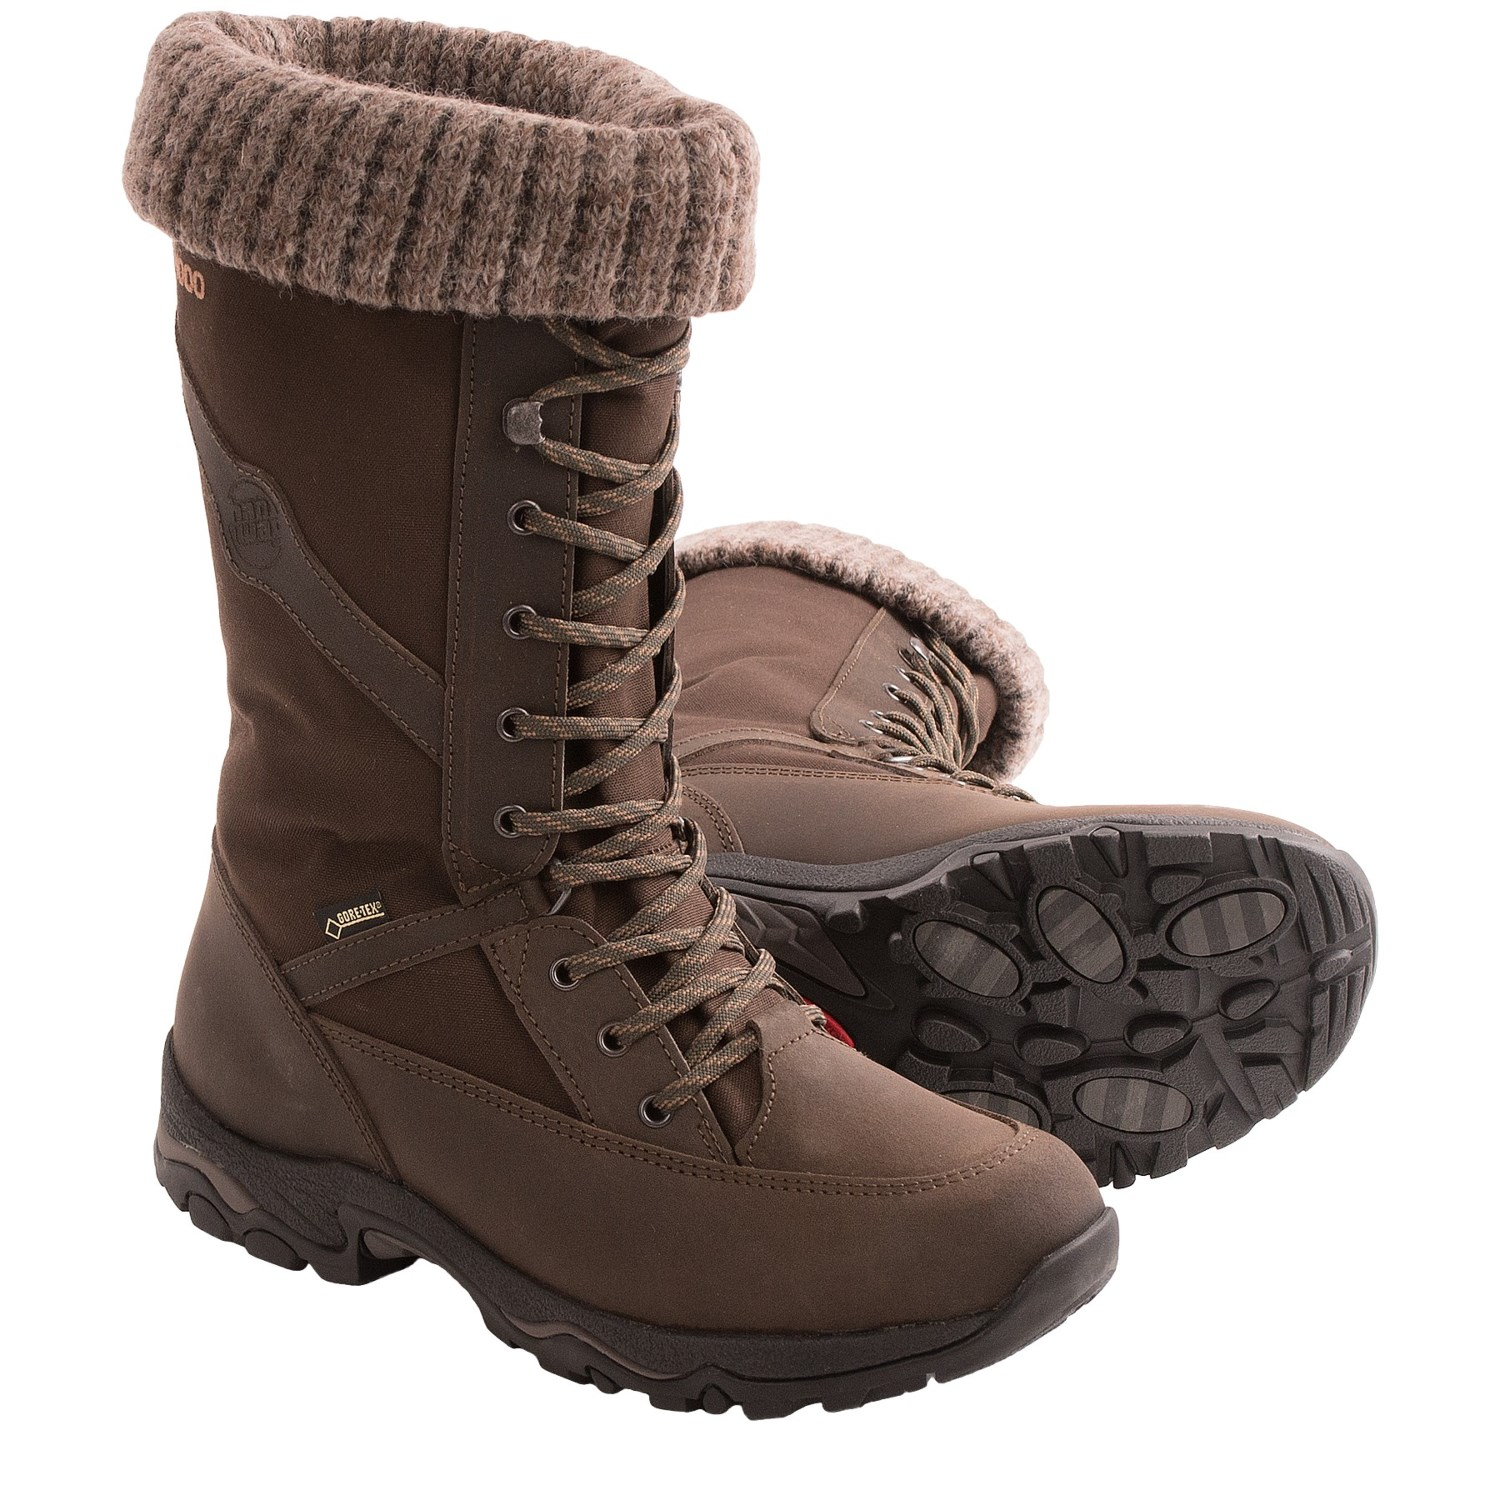 Hanwag Lunta Gore-Tex® Snow Boots (For Women) - Save 58%